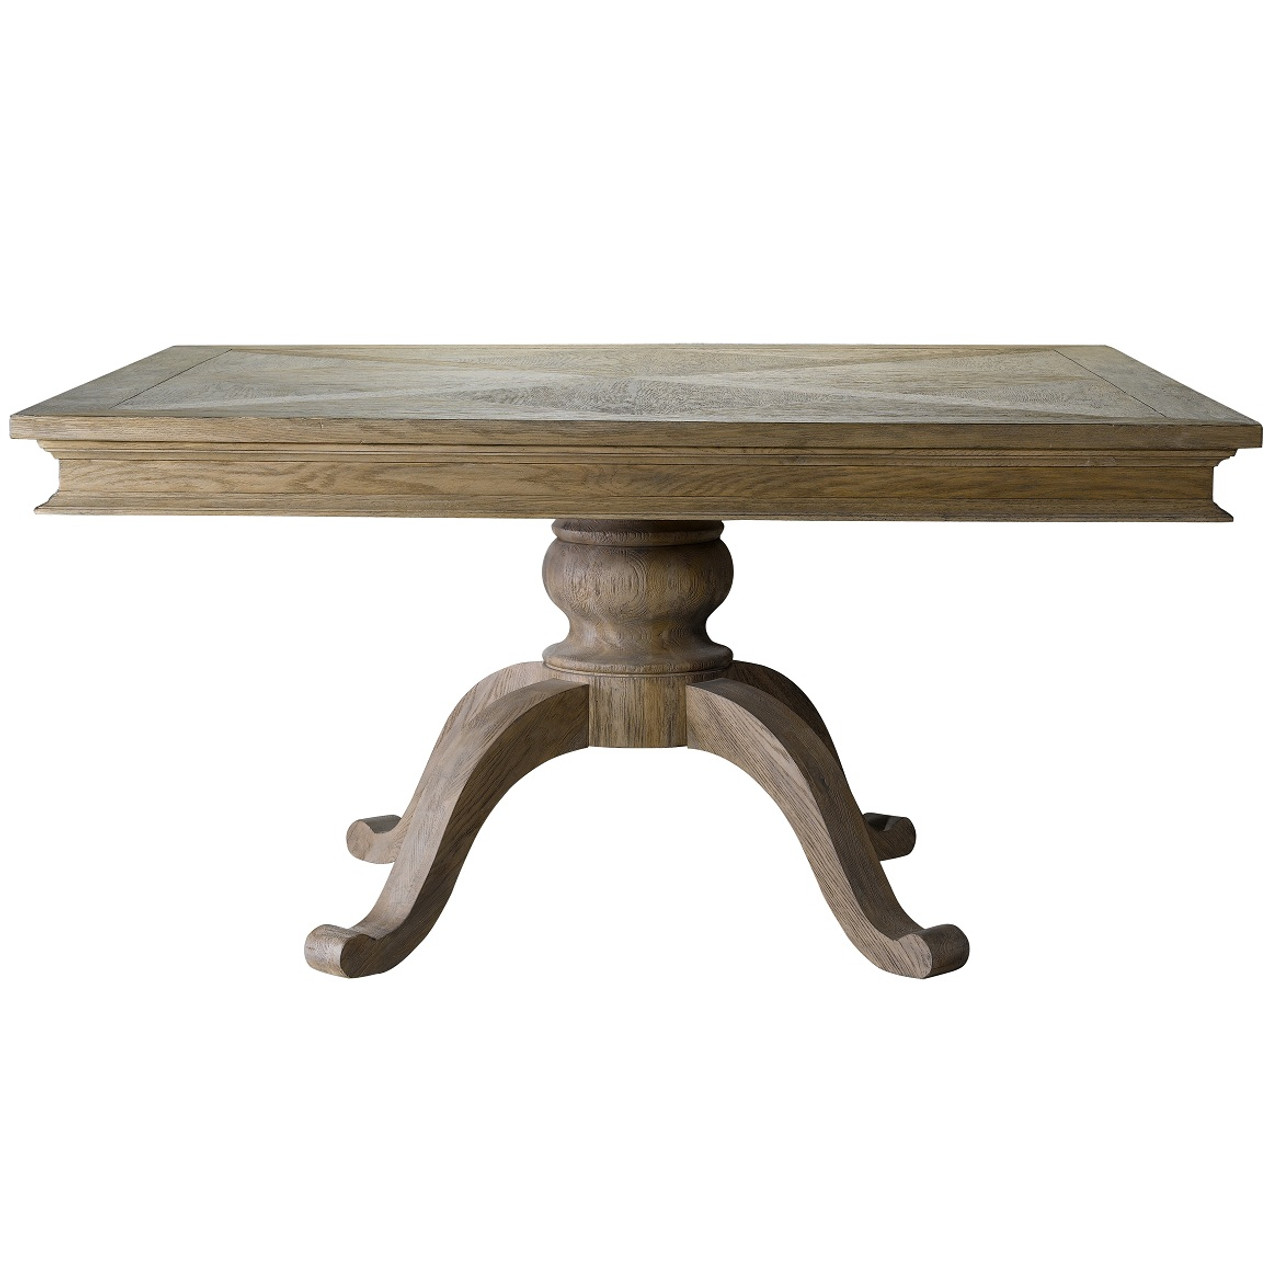 Wooden square dining table - Geneva Oak Wood Square Pedestal Dining Table 47